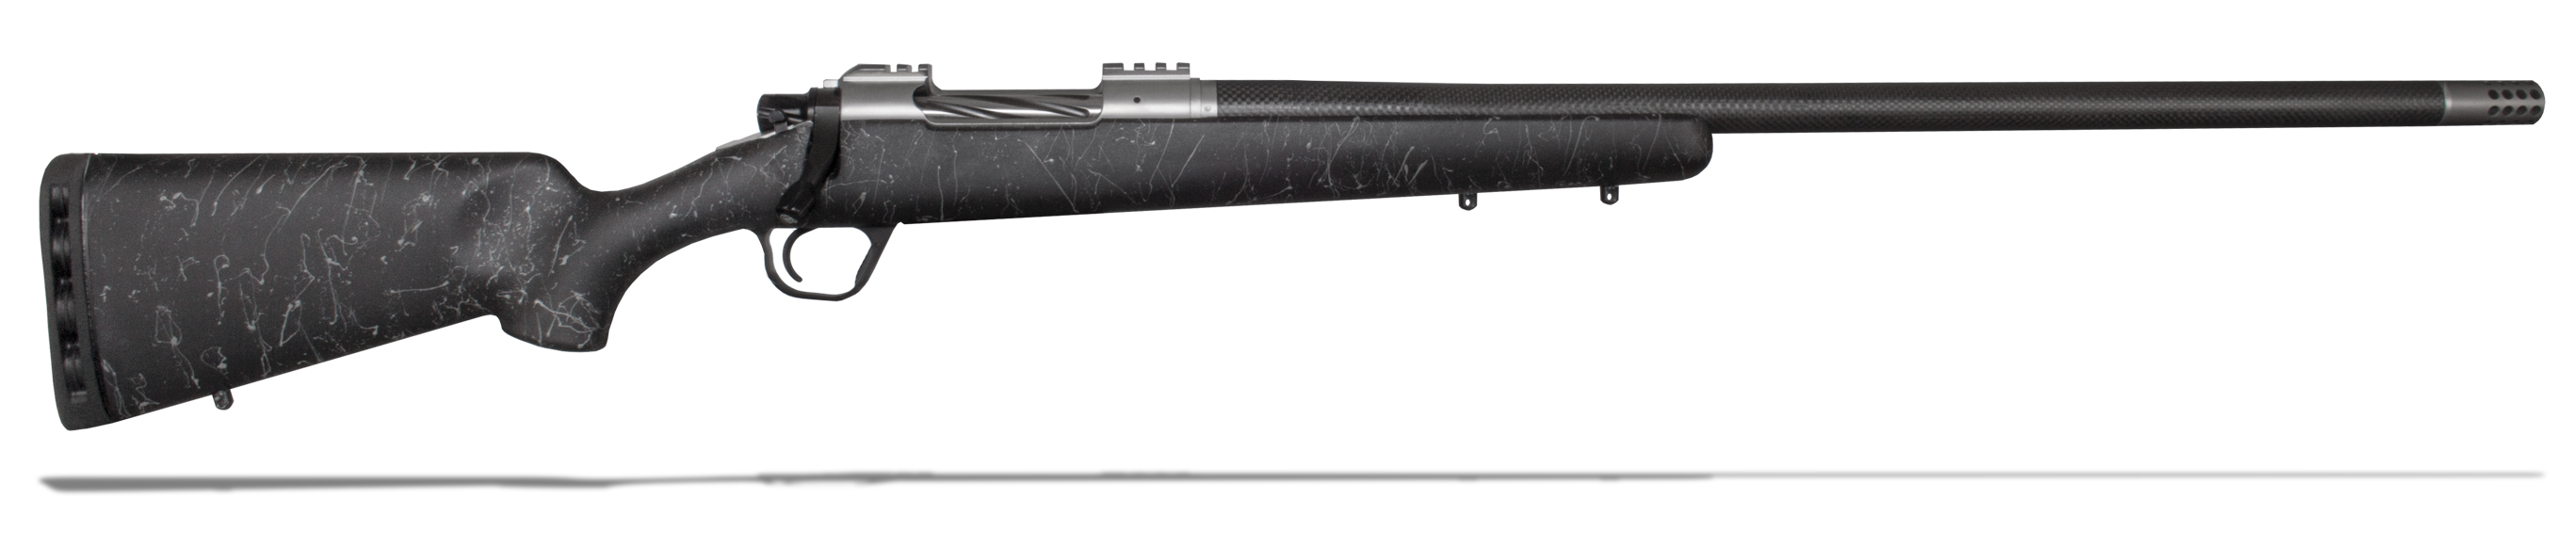 Christensen Arms Classic II .308 Win 24